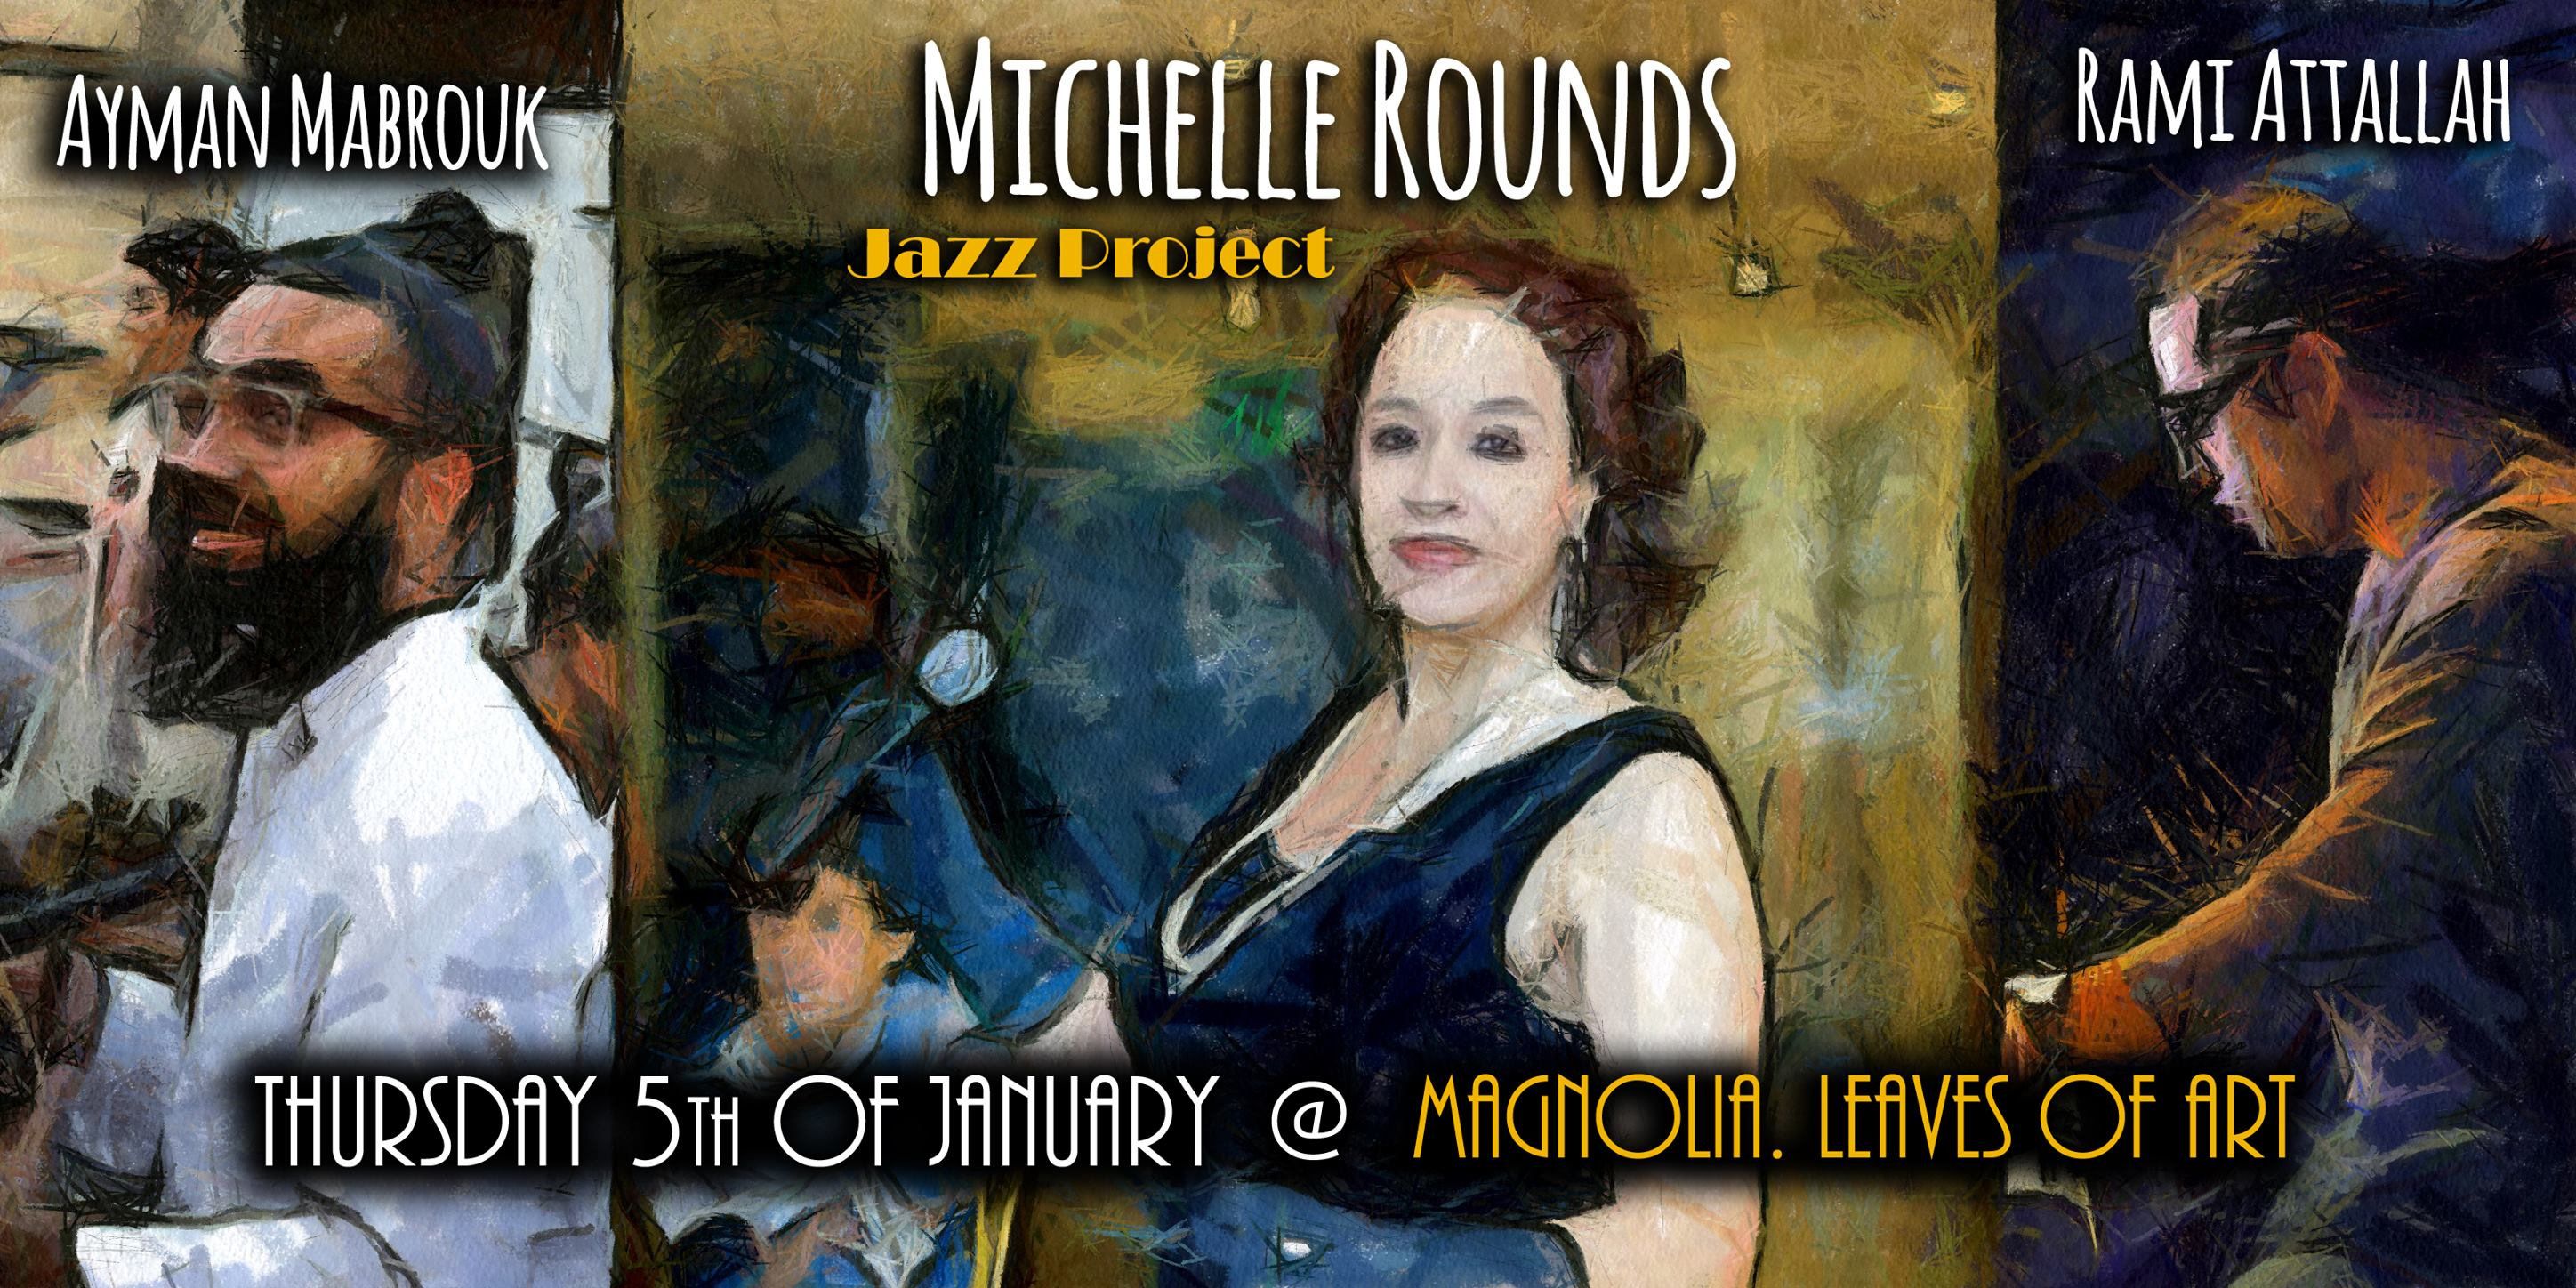 MICHELLE ROUNDS (JAZZ PROJECT)